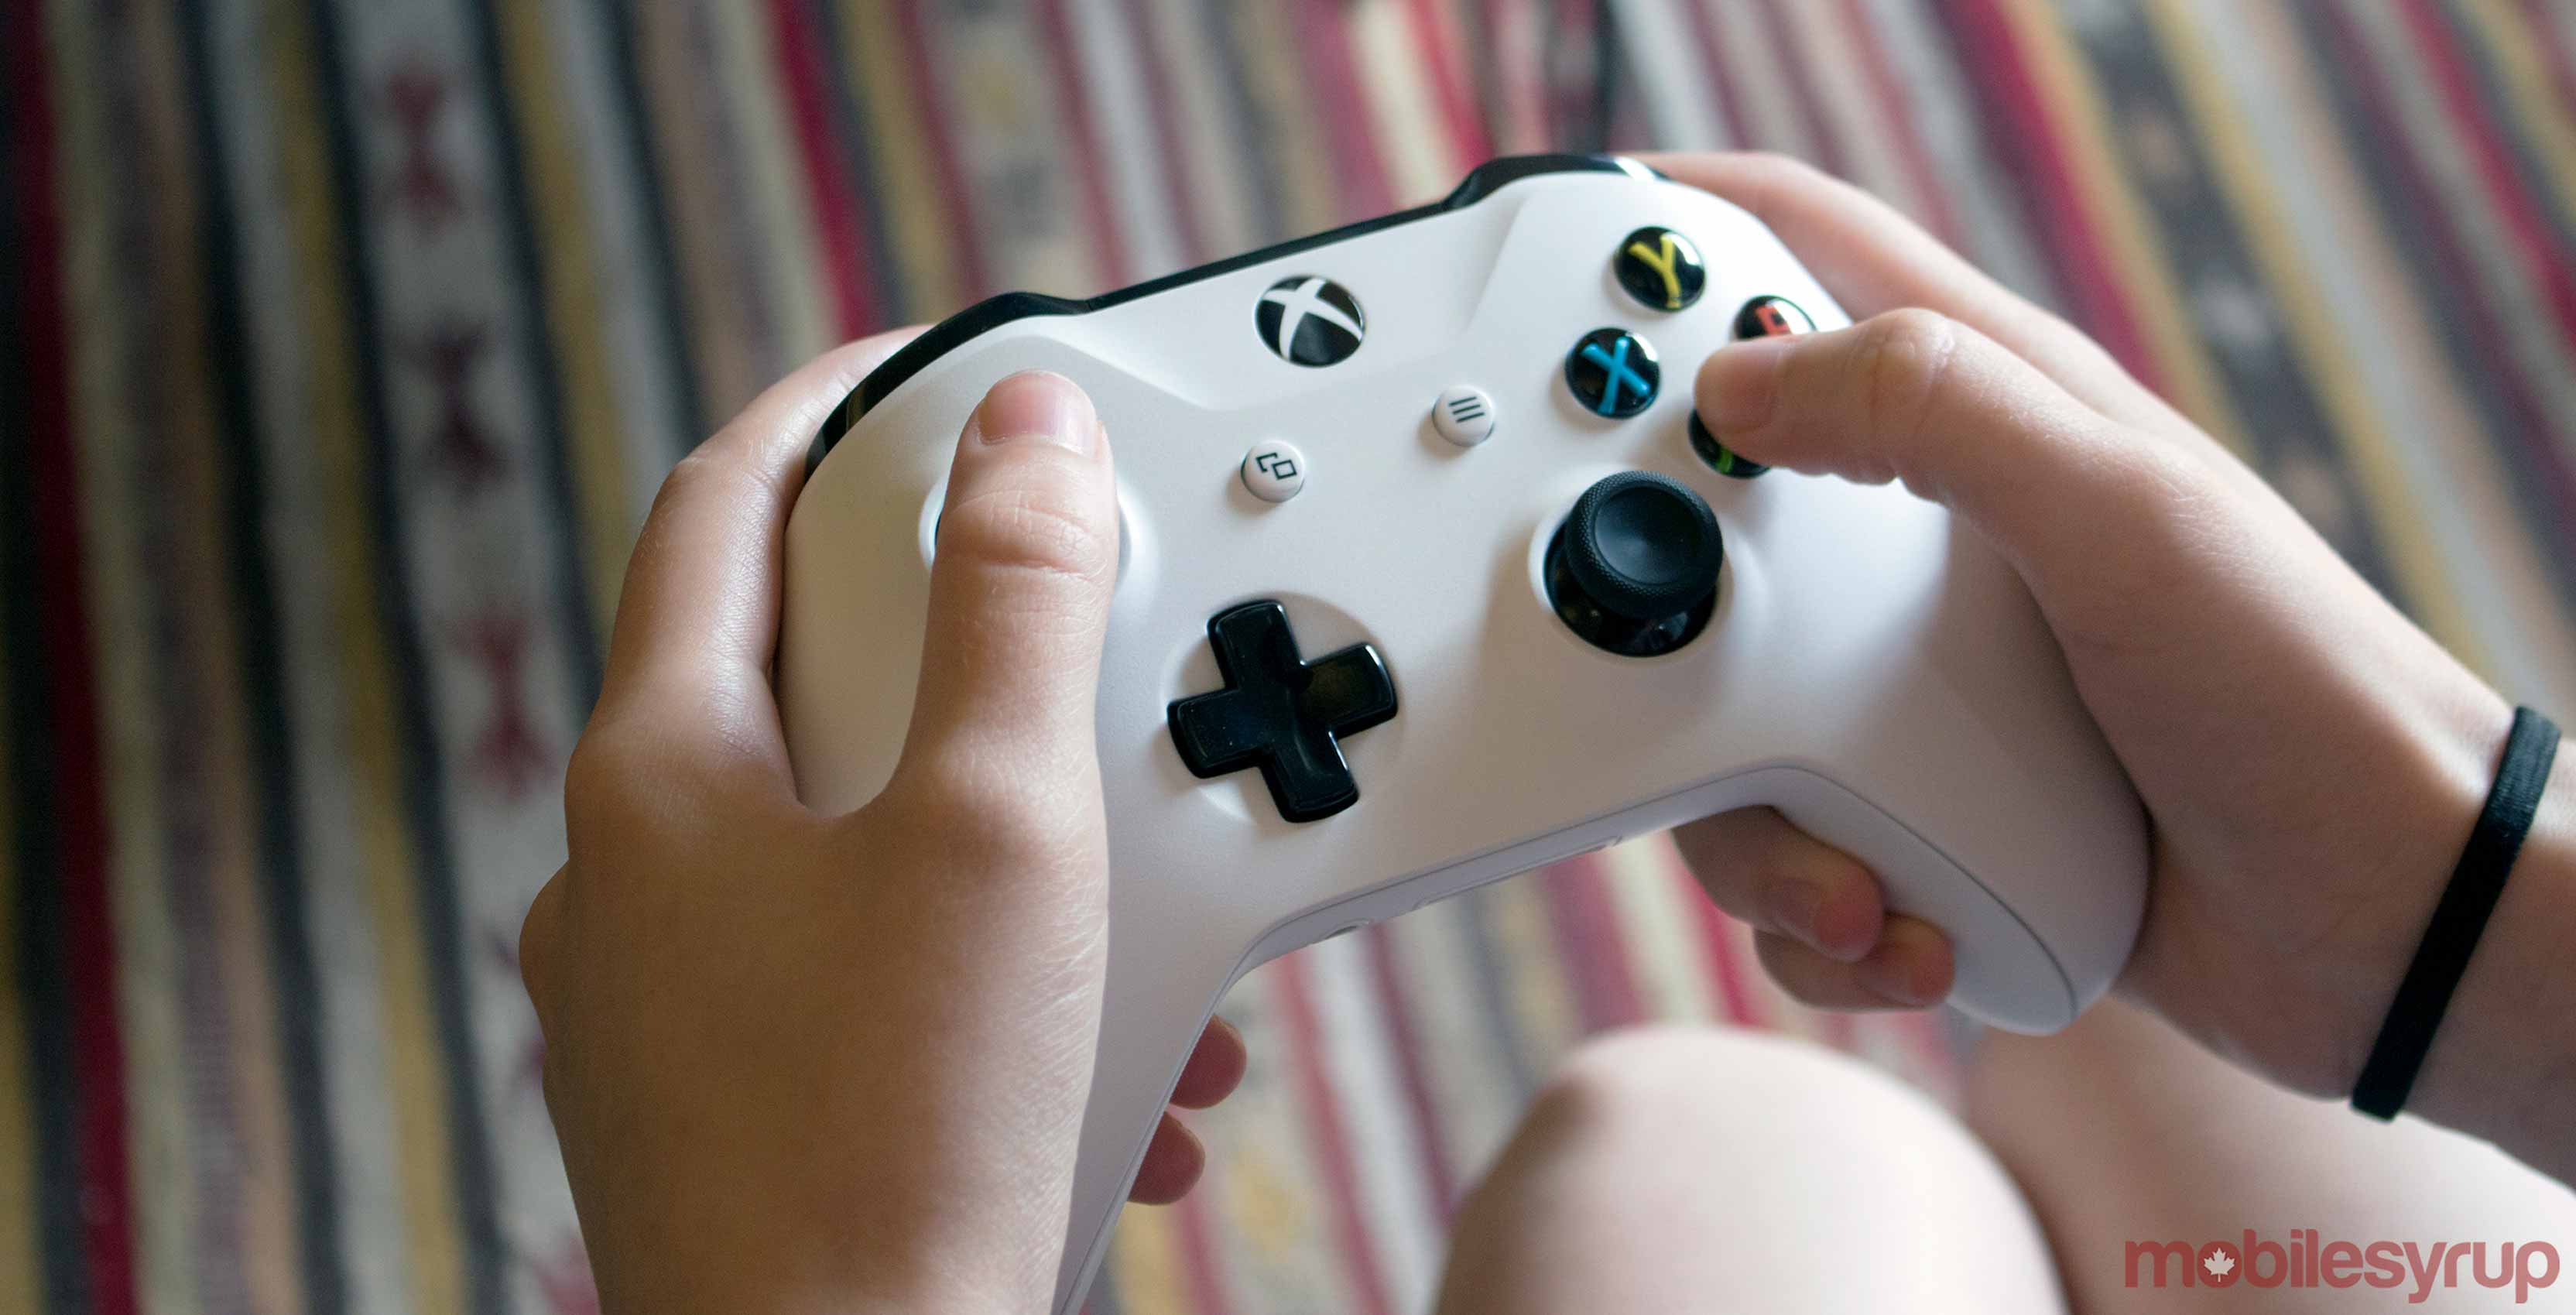 Xbox One controller - game chat transcription